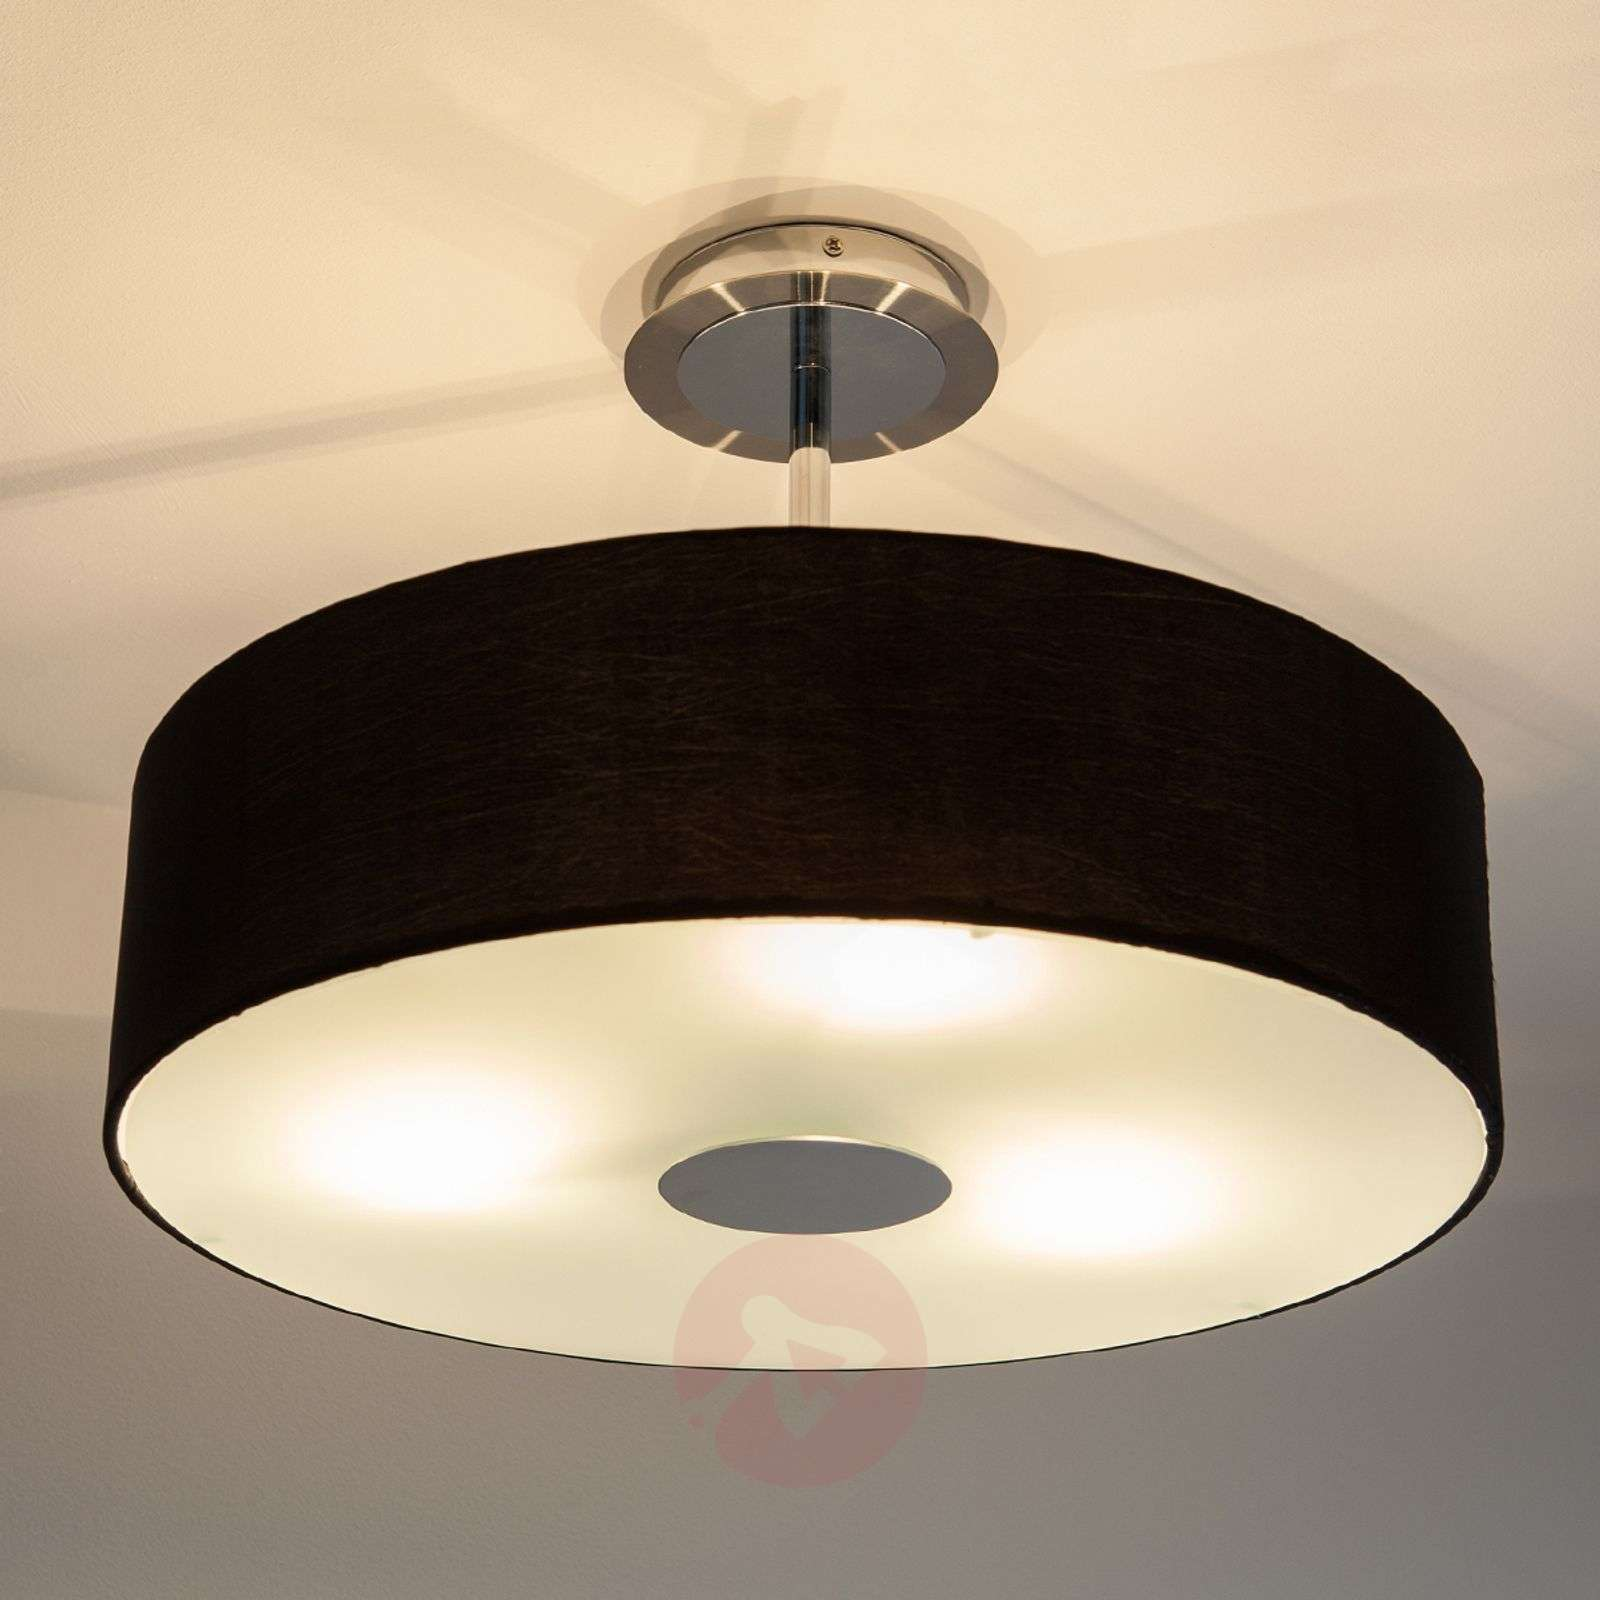 Black ceiling light Gabriella-9620049-01